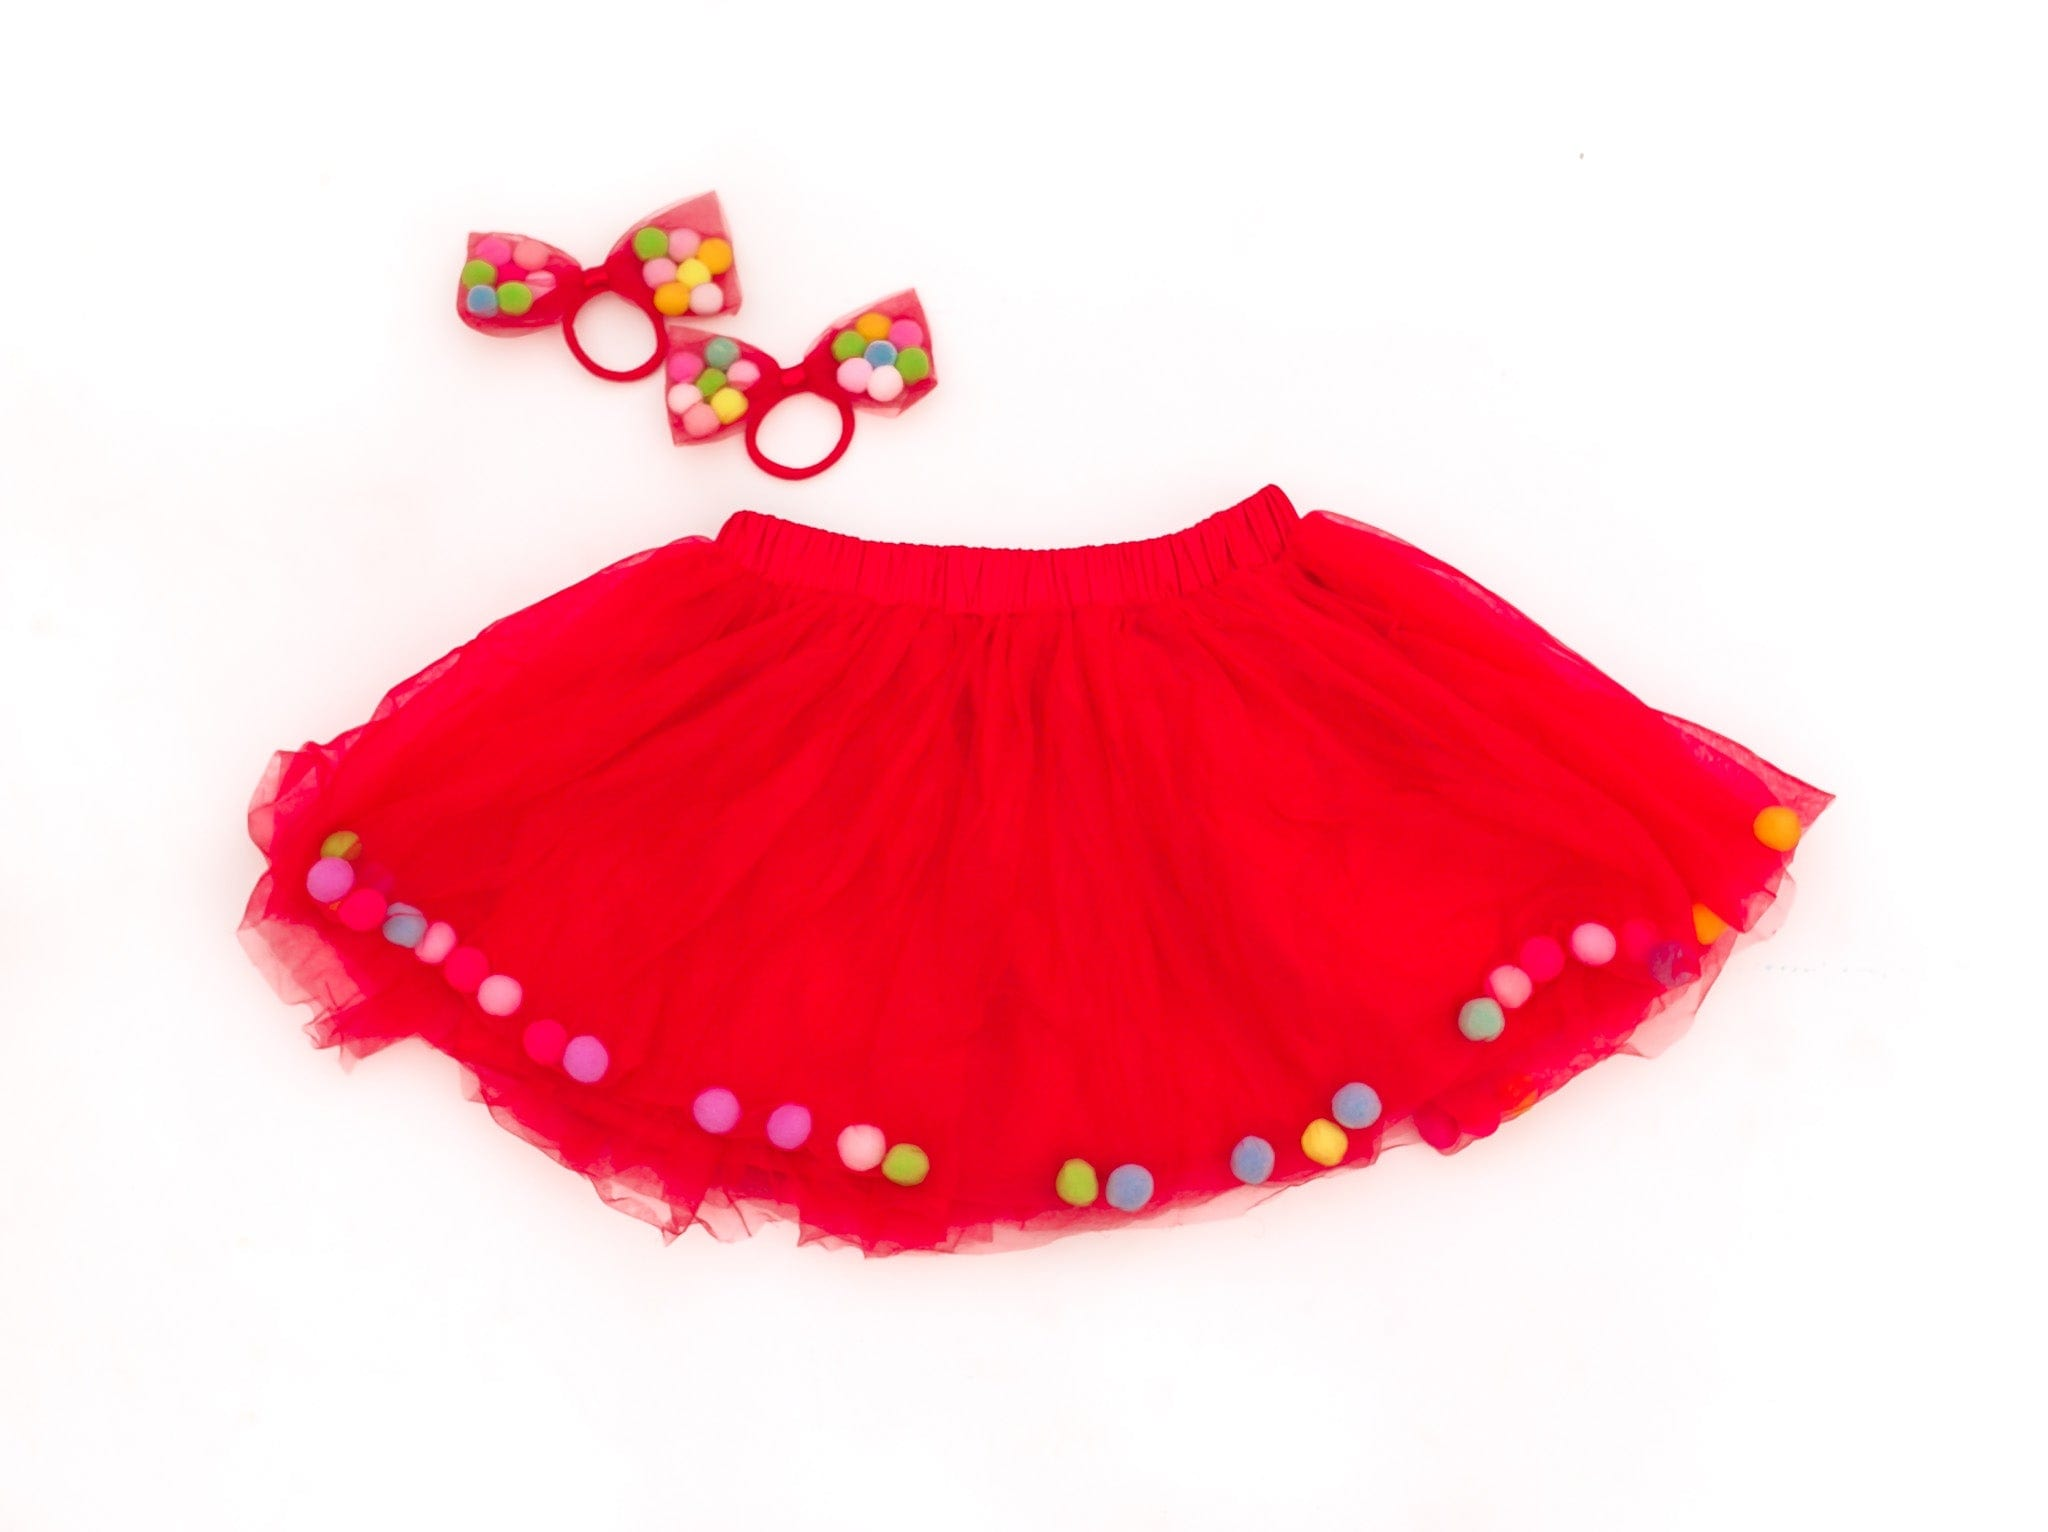 red pom pom tutu, christmas tutu, valentines day tutu for kids, baby red tutu, toddler baby tutu, kids red tutu, tutu, tootoo, red bow ponytail holder, red bows for kids, pom pom bows, pom poms, tutu joli, fun tutu, party tutu, photoshoot tutu